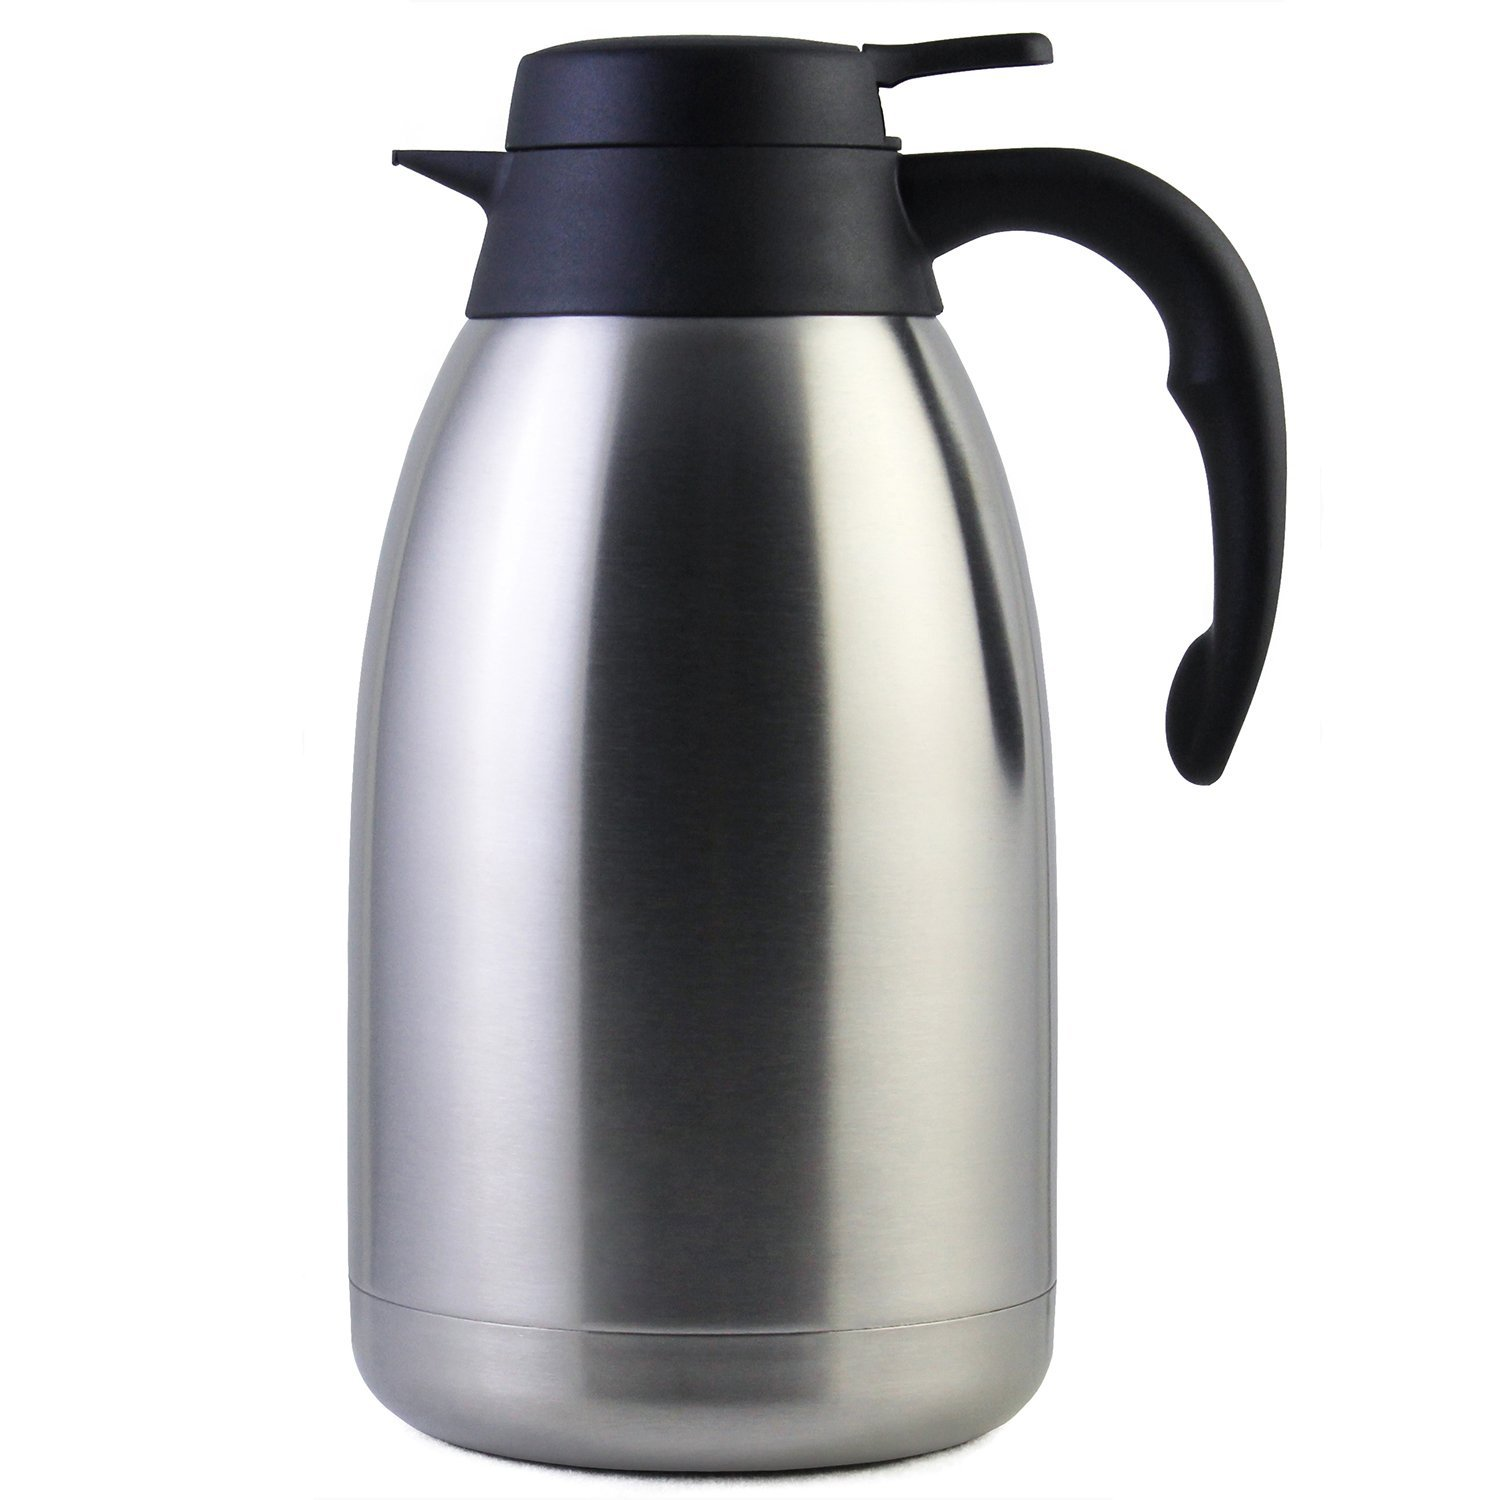 68 OZ thermal coffee-carafe double walled stainless steel vacuum thermos